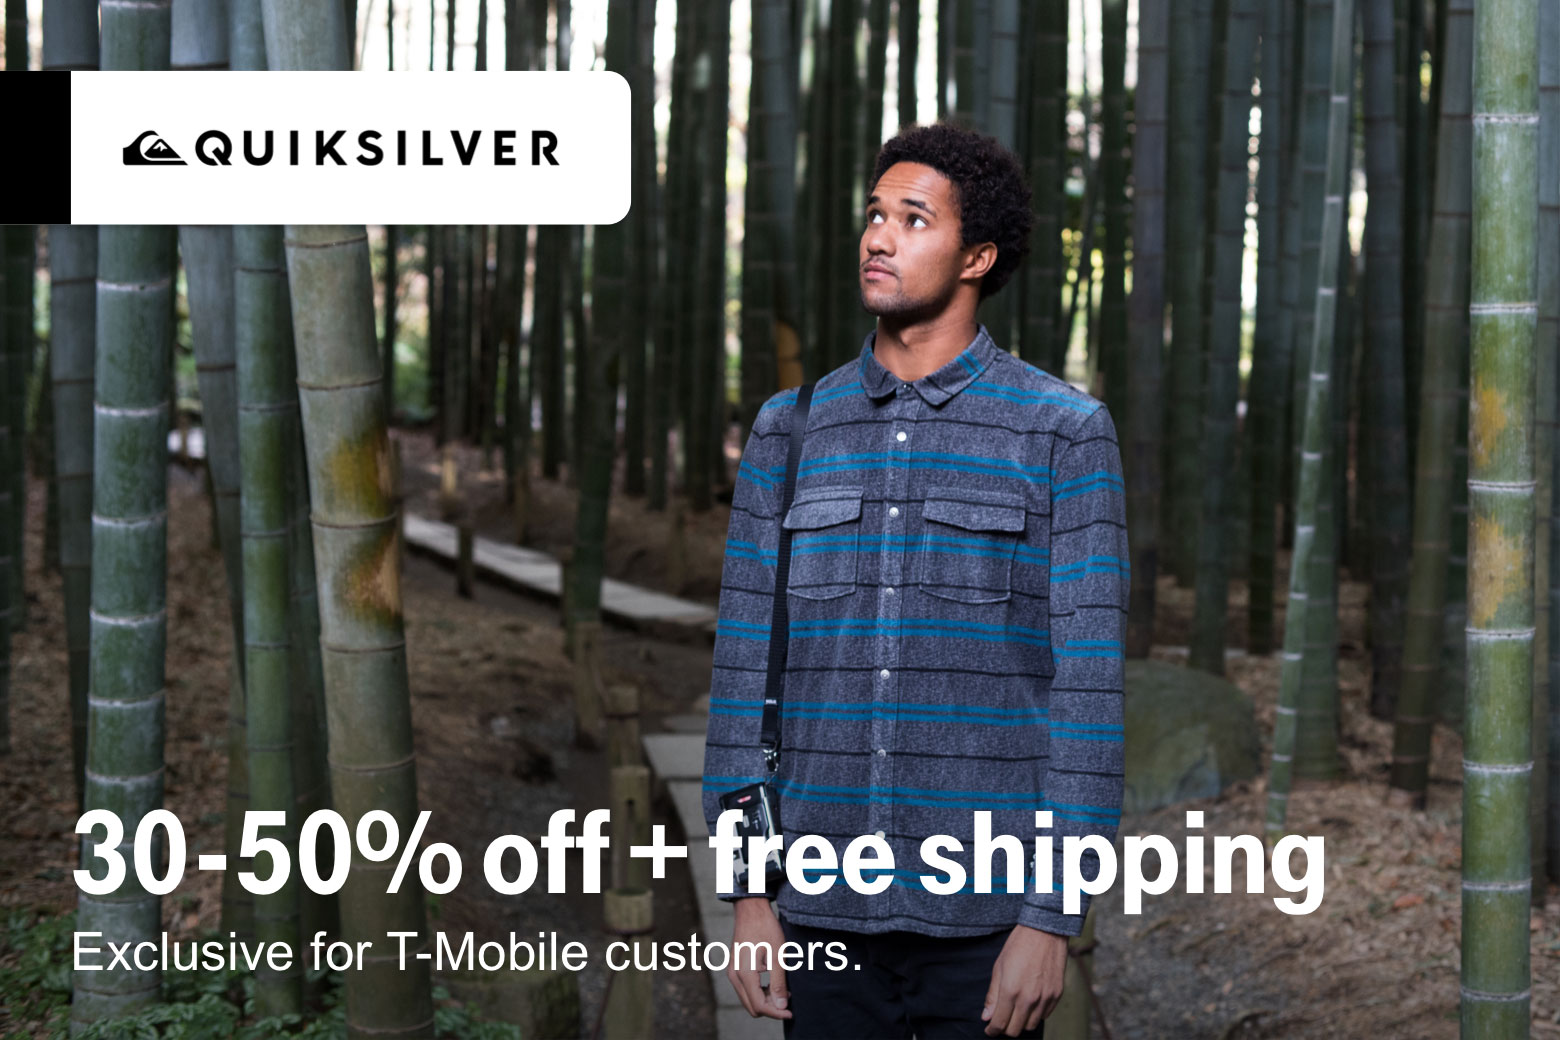 Quiksilver. 30-50% off + free shipping. Exclusive for T-Mobile customers.